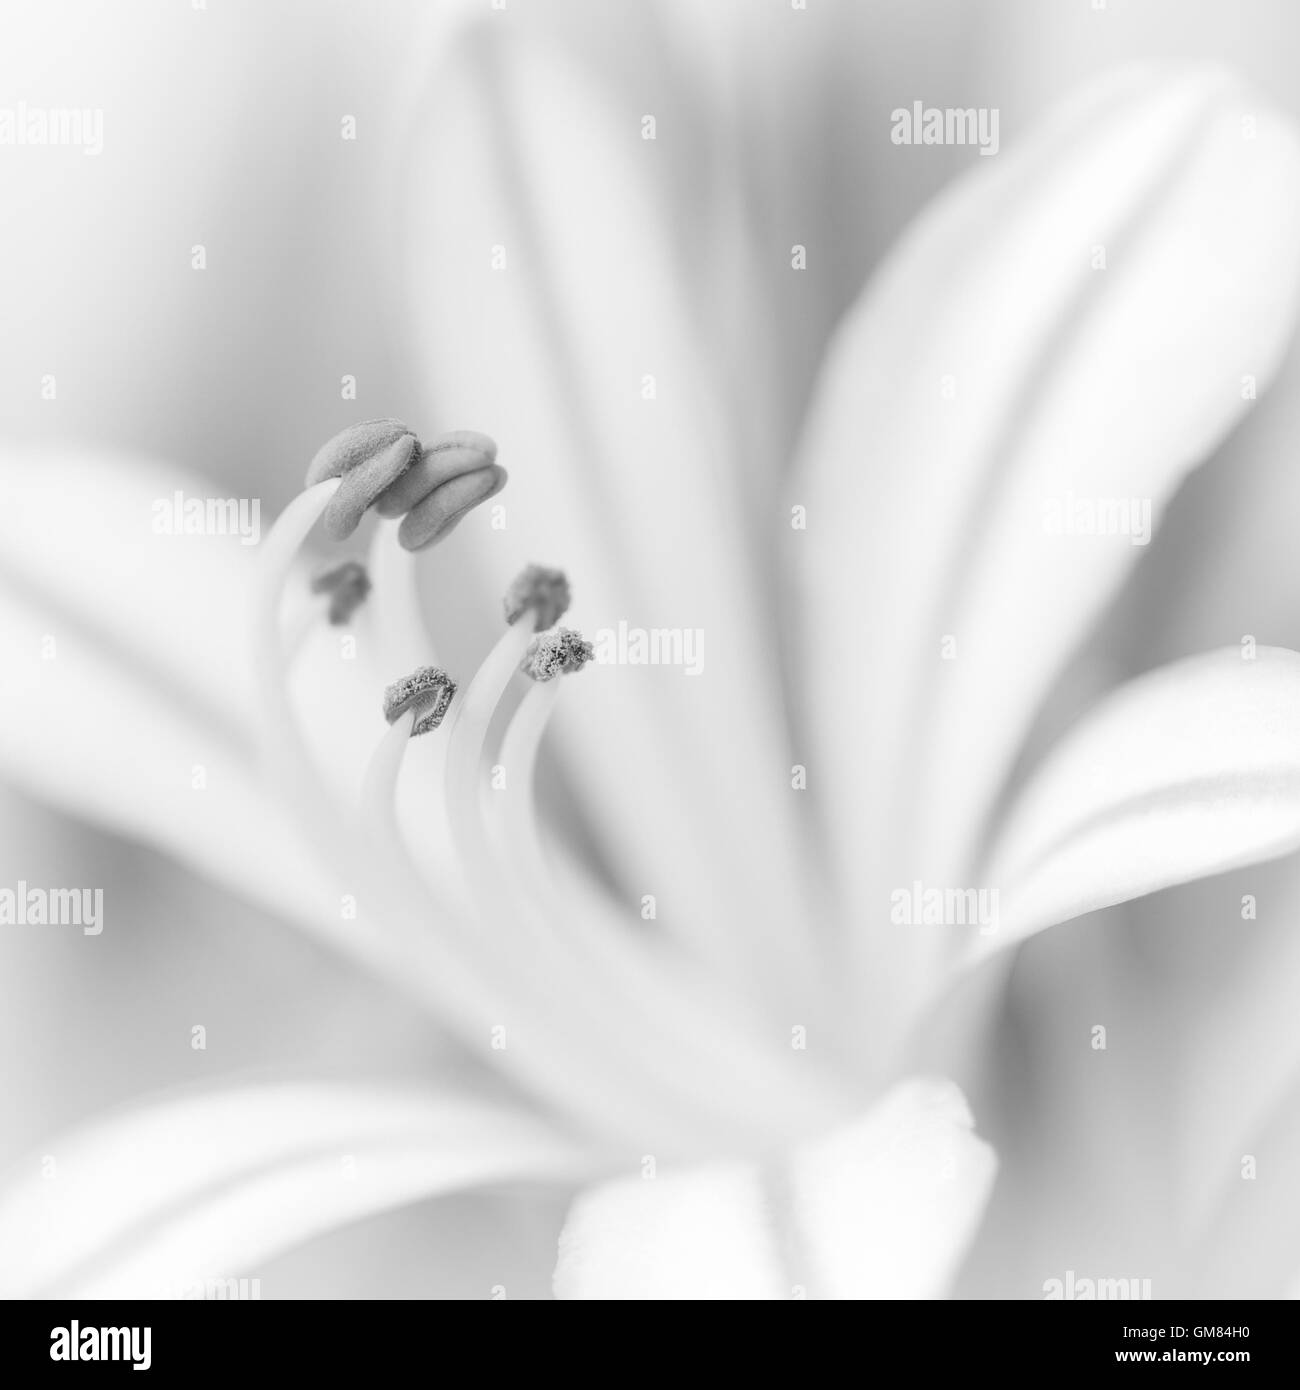 Close up of Agapanthus flower, black and white. - Stock Image